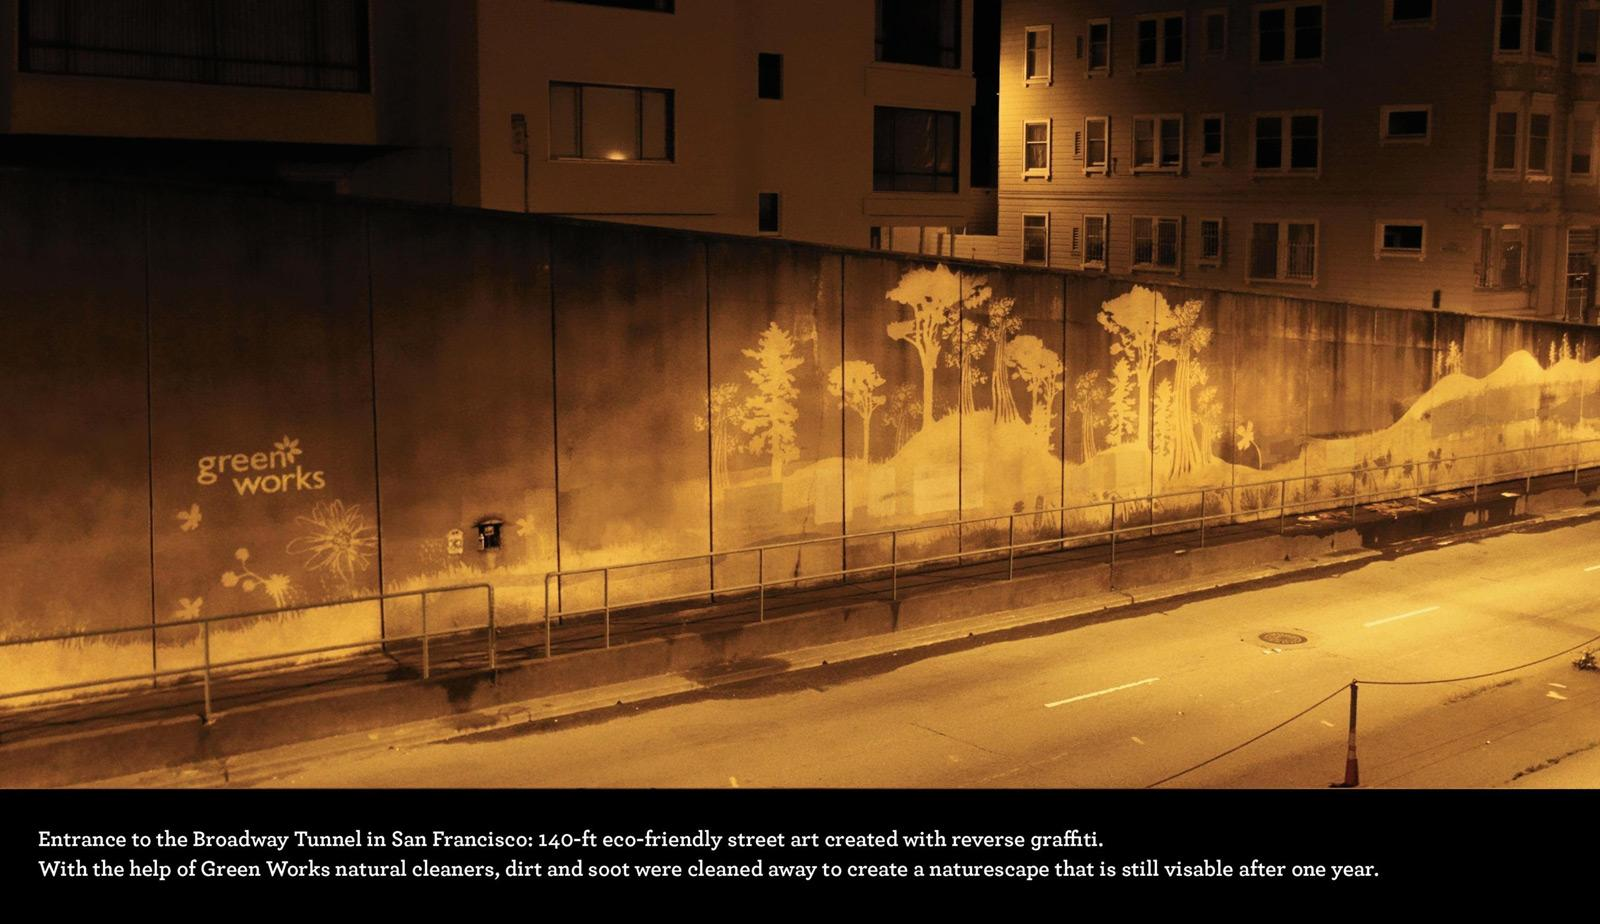 Green Works Ambient Ad -  Reverse graffiti